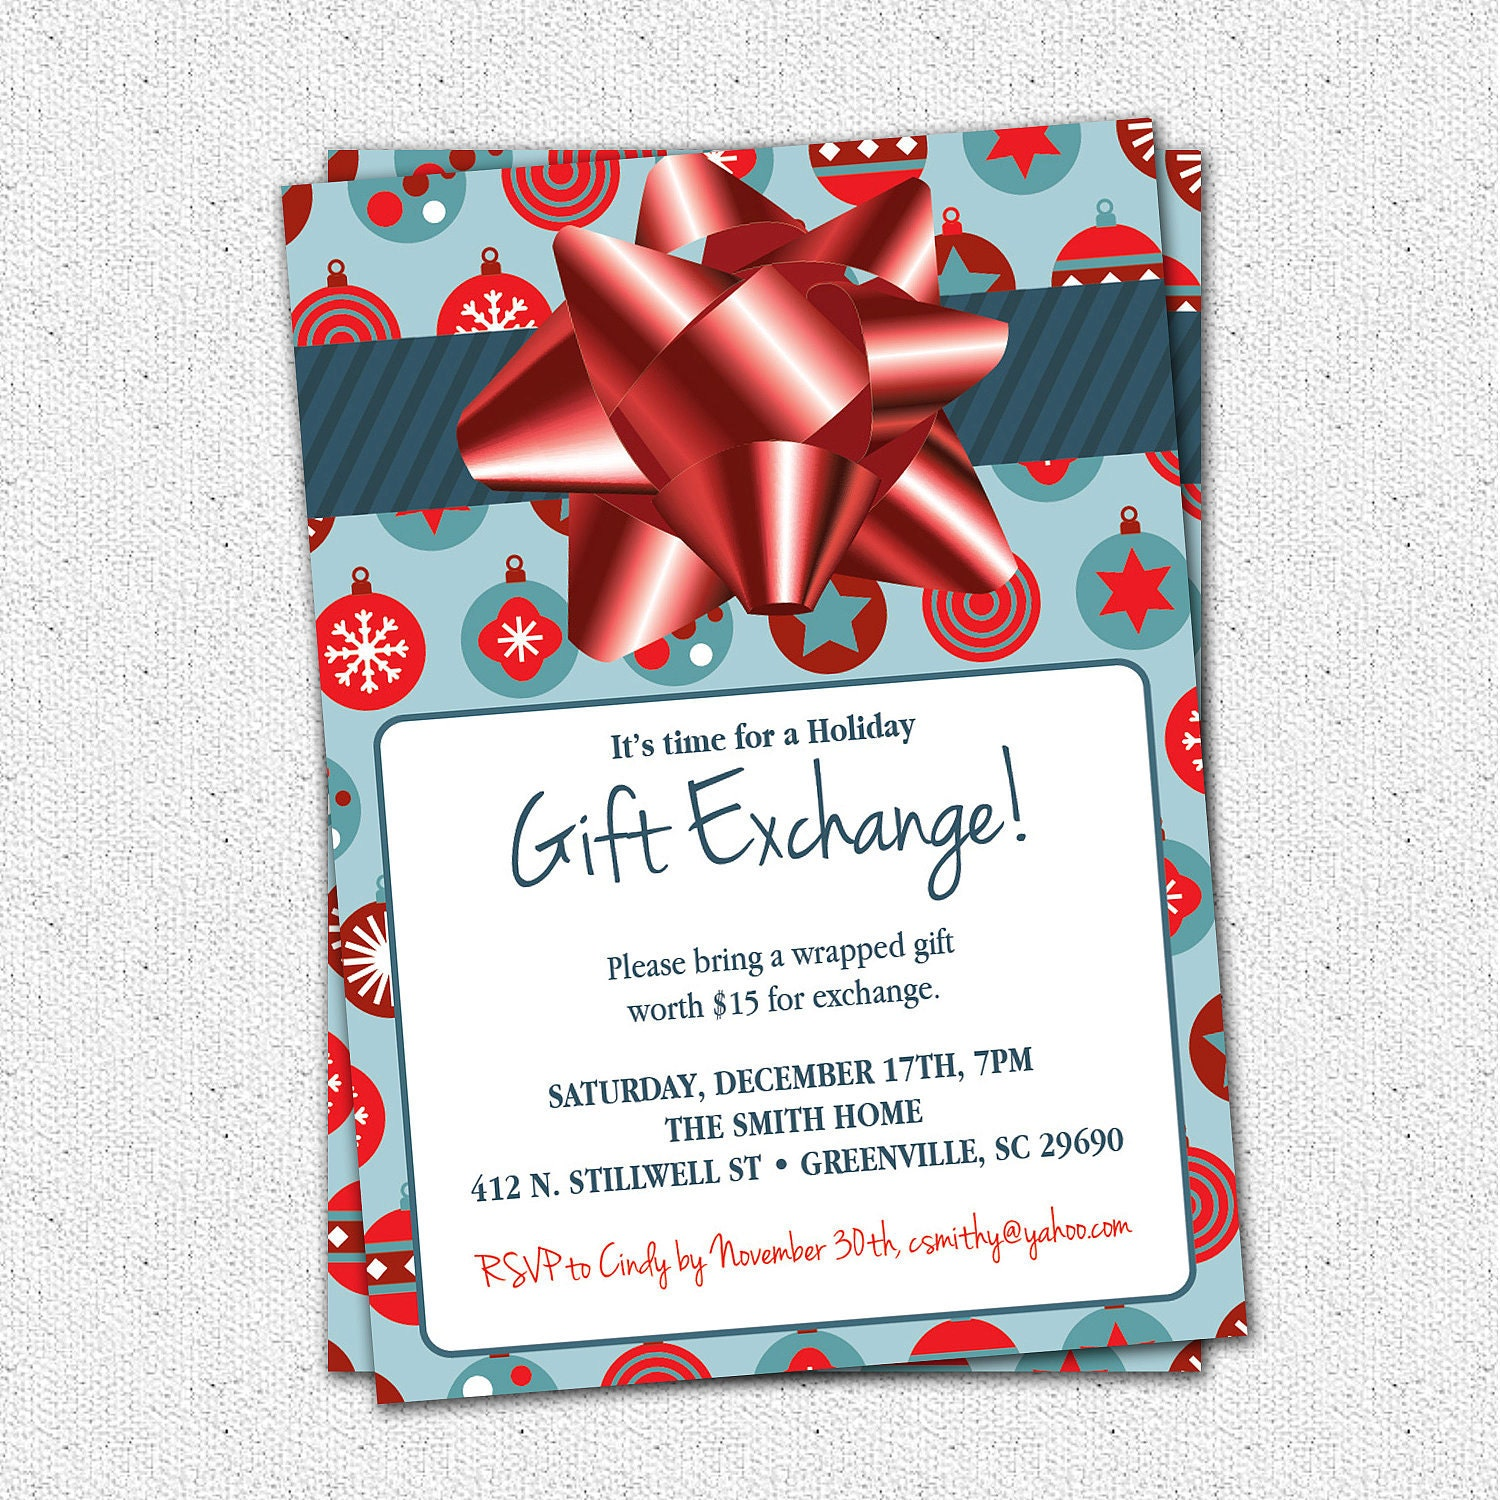 Gut bekannt Christmas Holiday Gift Exchange Party Invitation Blue or Green FS95